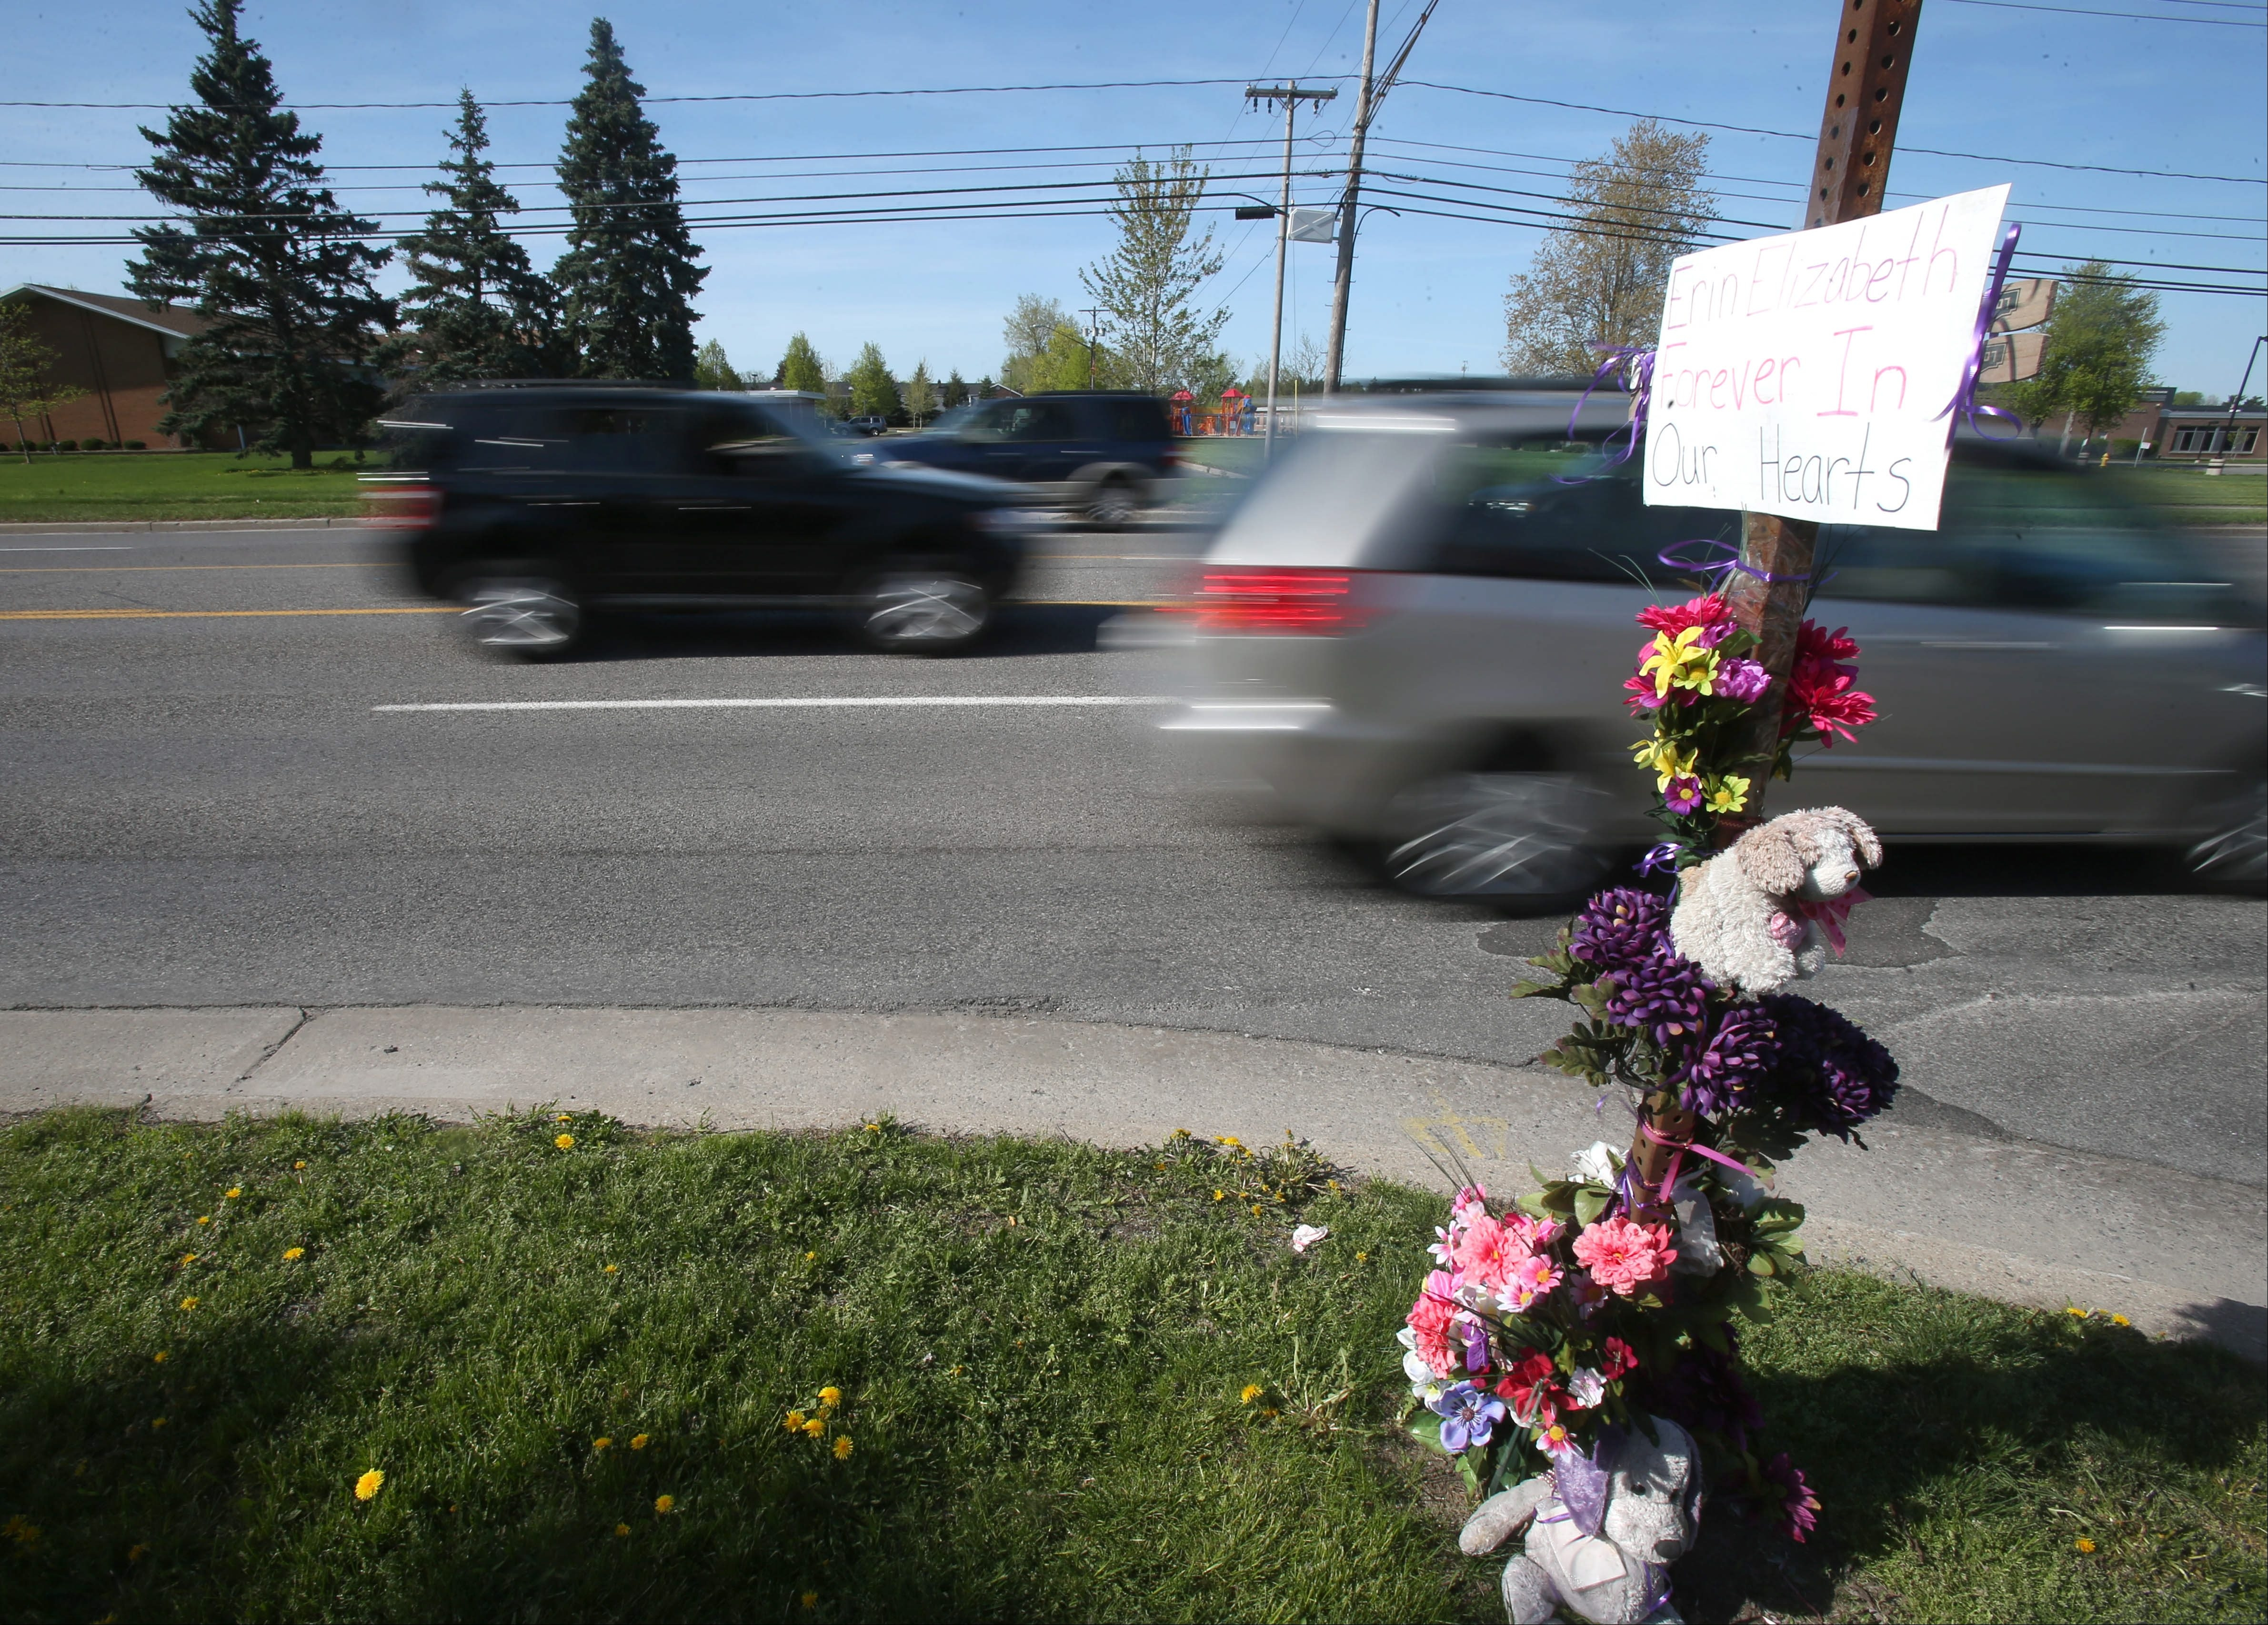 A crosswalk is being urged for this spot on Maple Road where Erin Suszynski was struck and killed in June 2012. A memorial to Erin on a street sign marks the spot in this photo taken in May. (Robert Kirkham/Buffalo News)